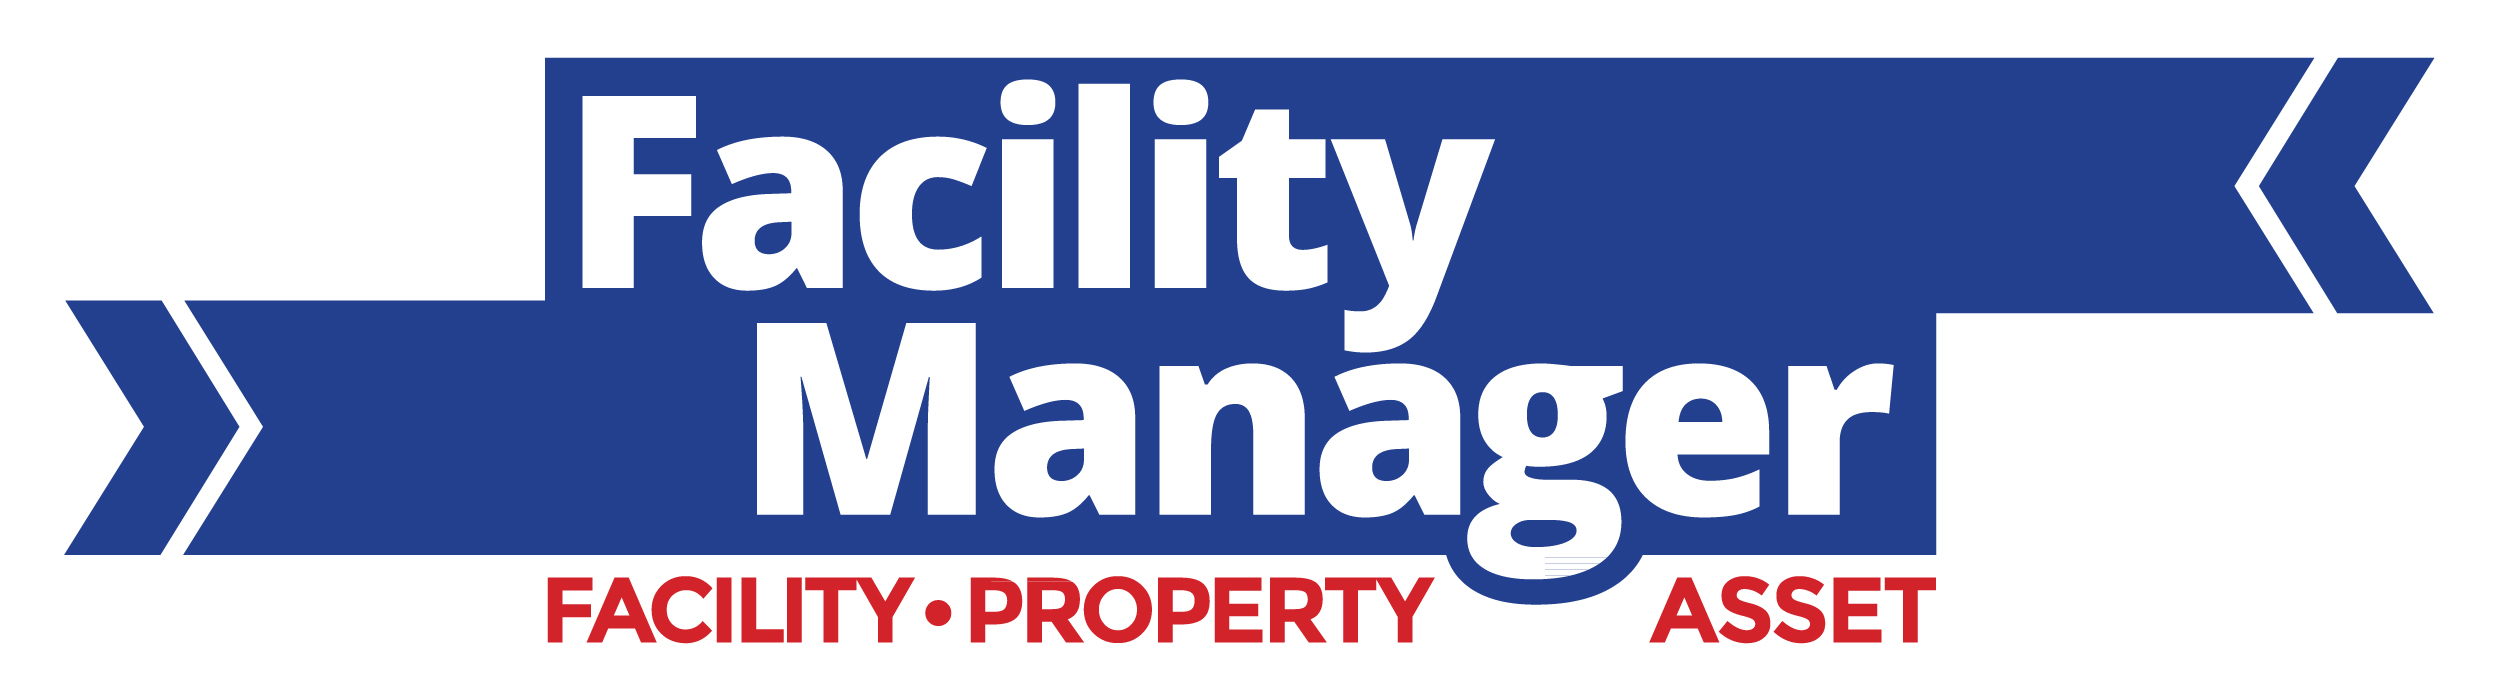 Facility Manager/